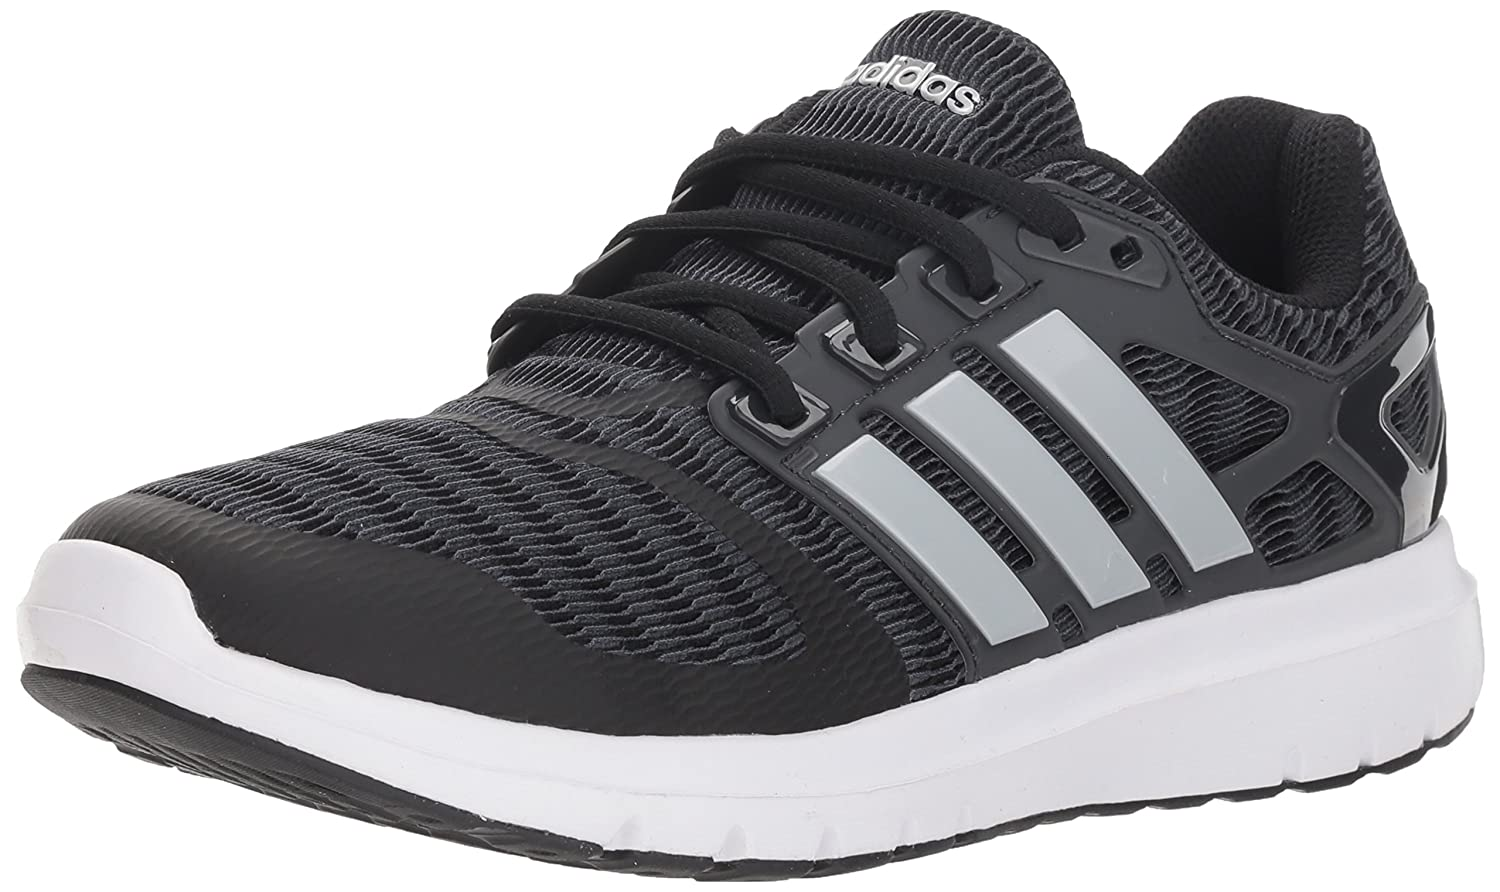 adidas Women's Energy Cloud V Running Shoe B077XHXSWC 10 M US|Black/Matte Silver/Carbon